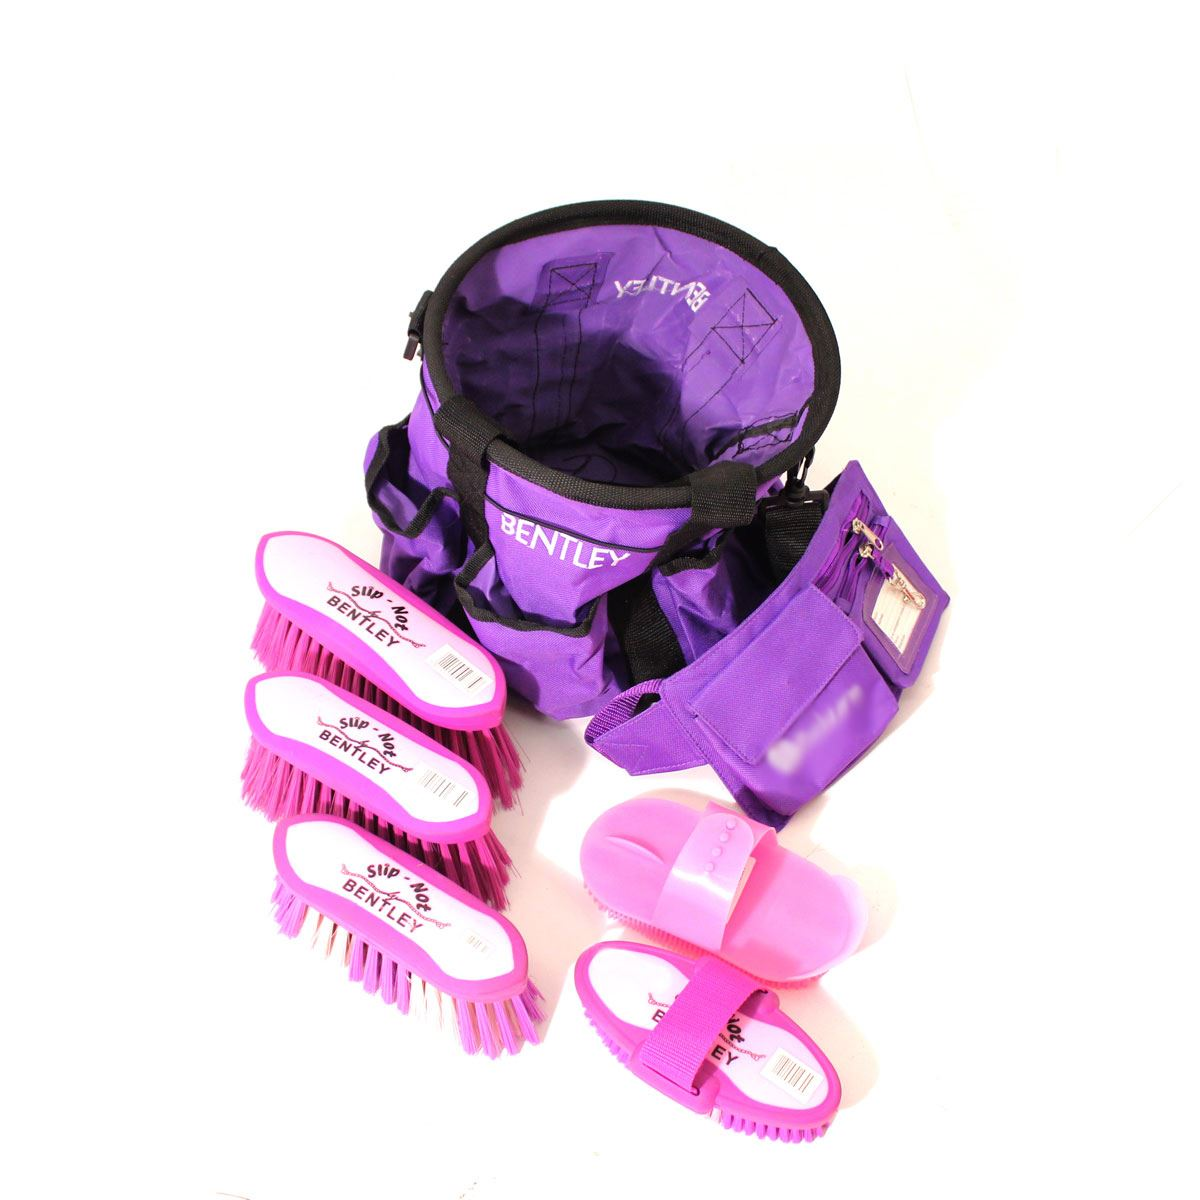 Bentley Slip Not Hoof Brush Pink At Burnhills: Equestrian Horse Grooming Kit Quality Pony Grooming